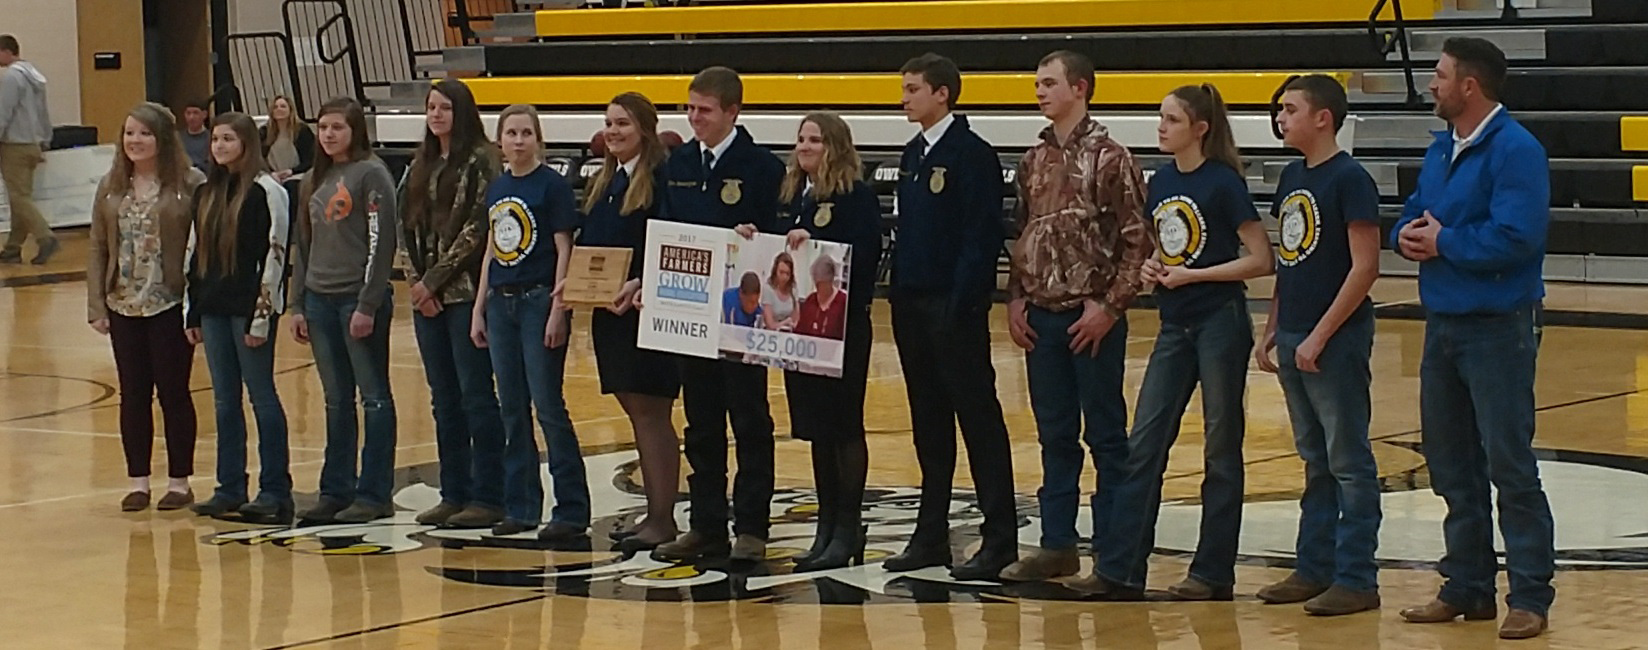 Renwick FFA is Monsanto winner (1).jpg